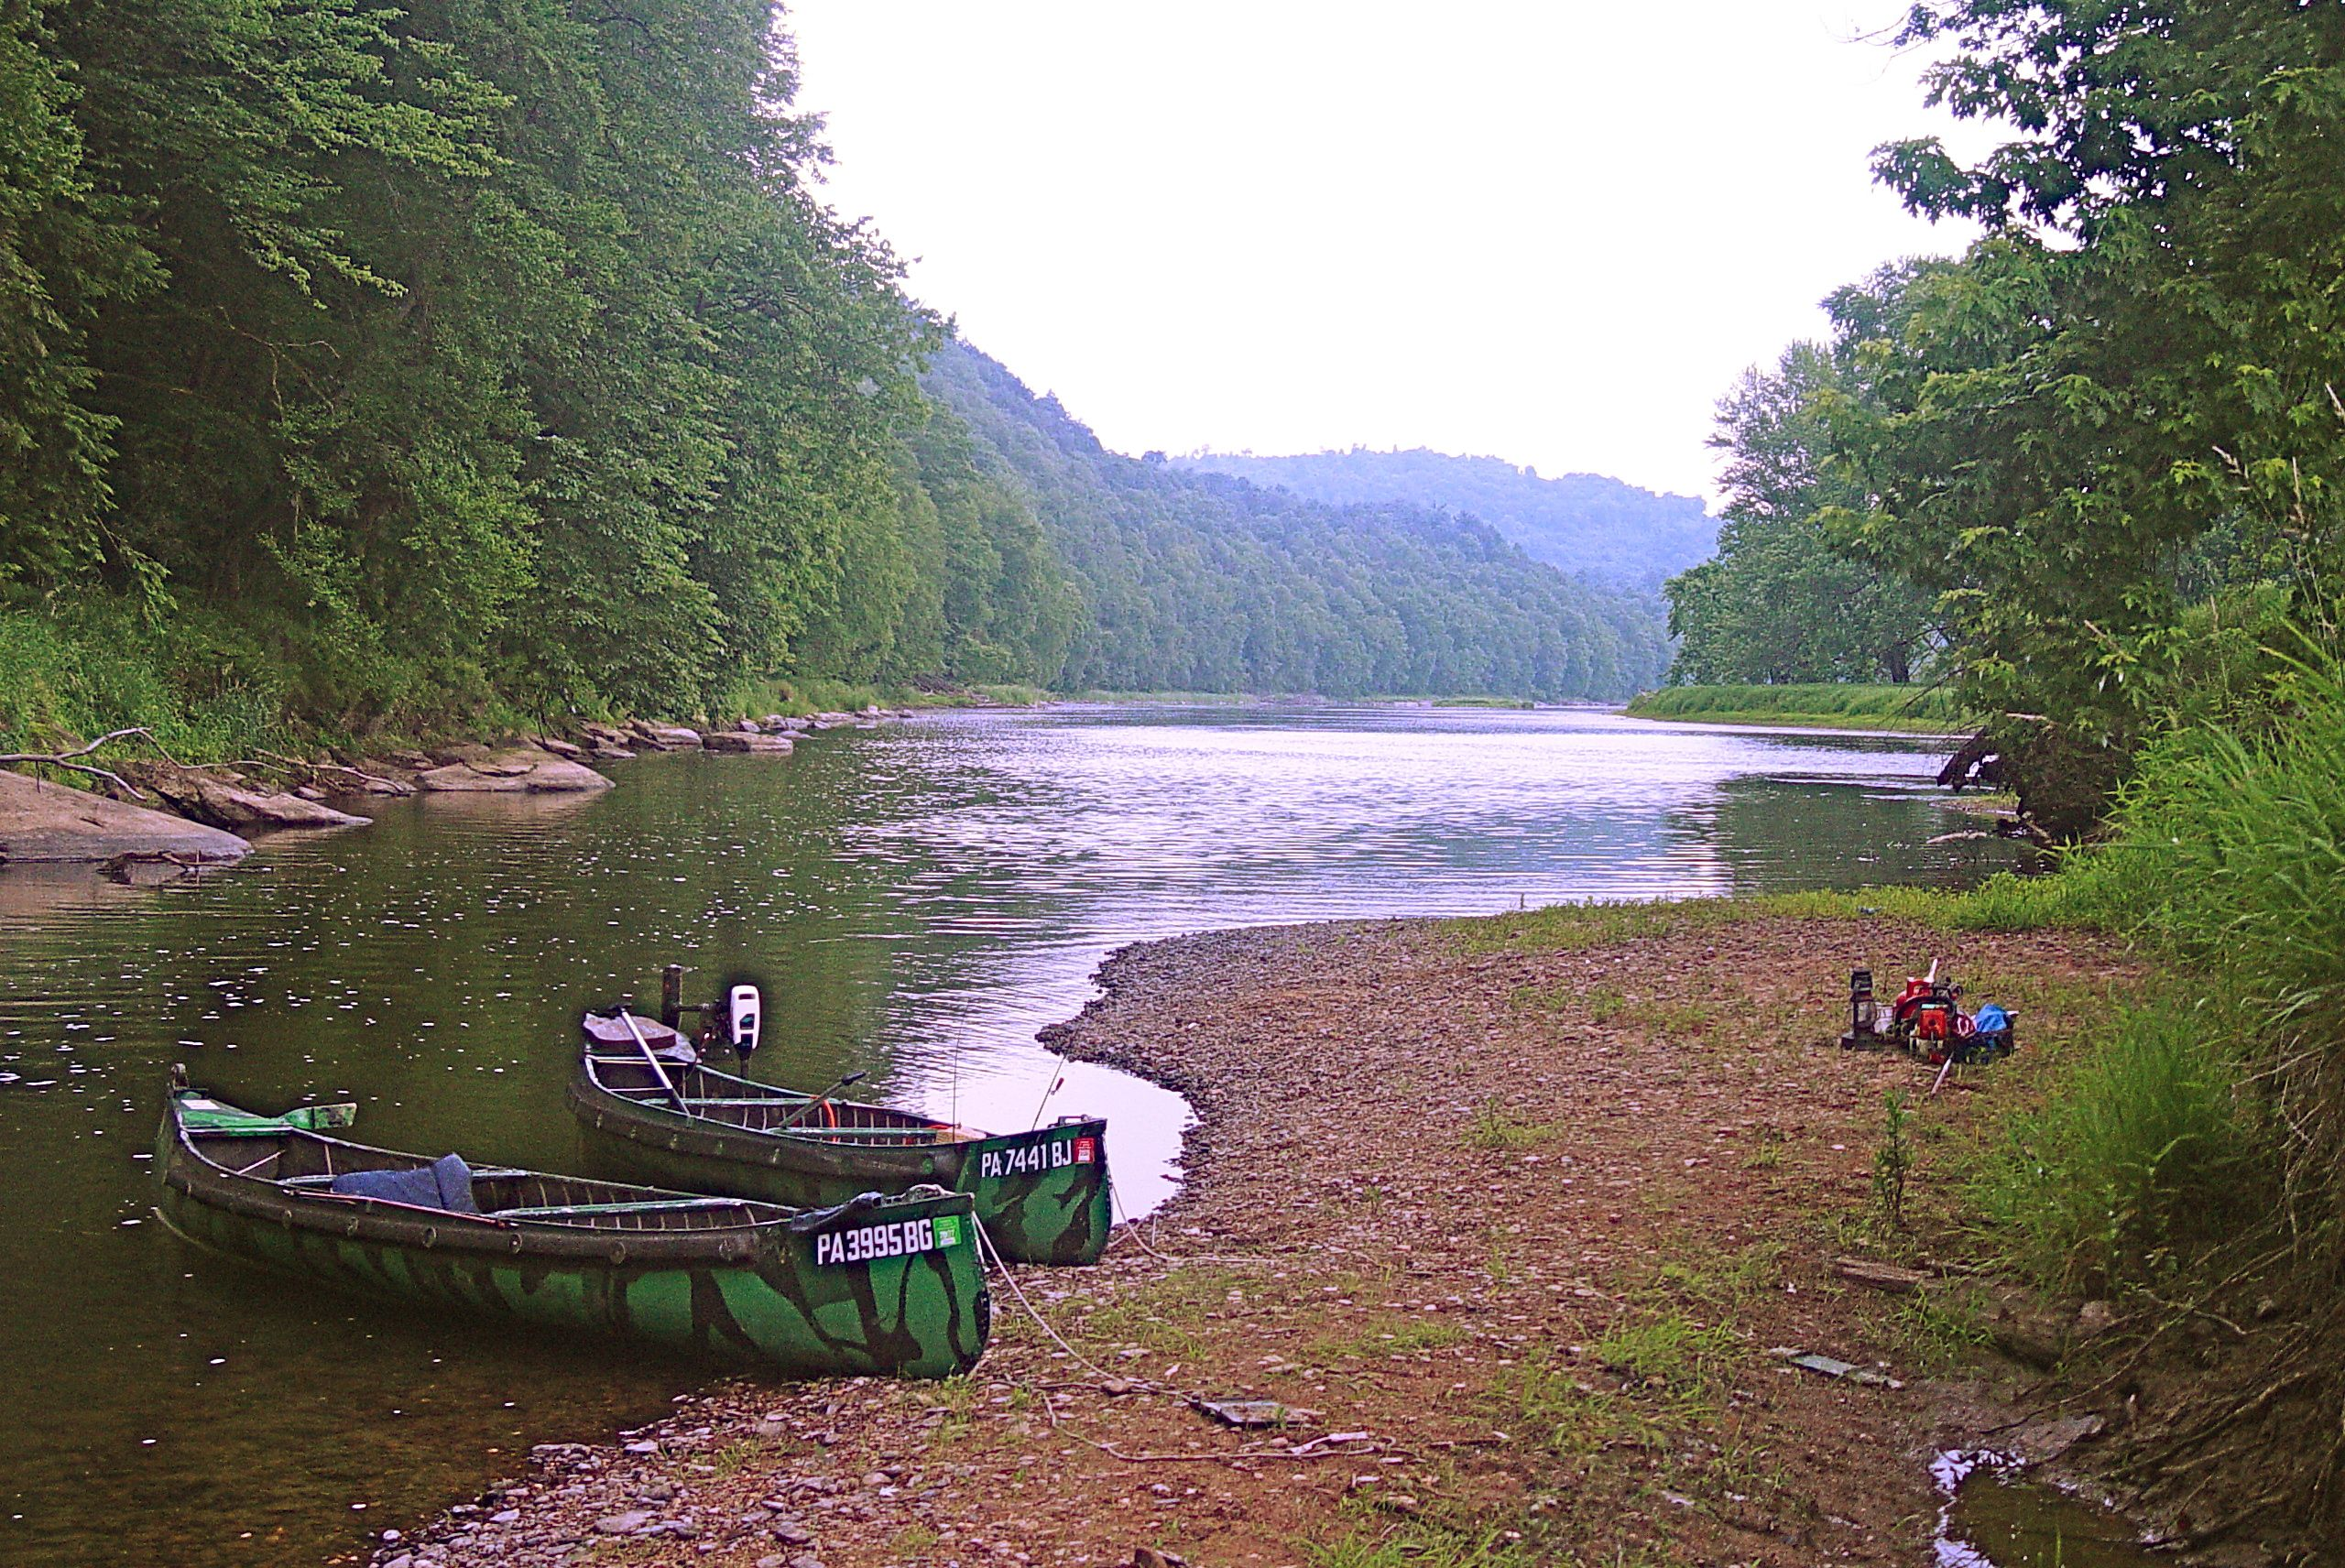 Break time on the Allegheny River in the Allegheny National